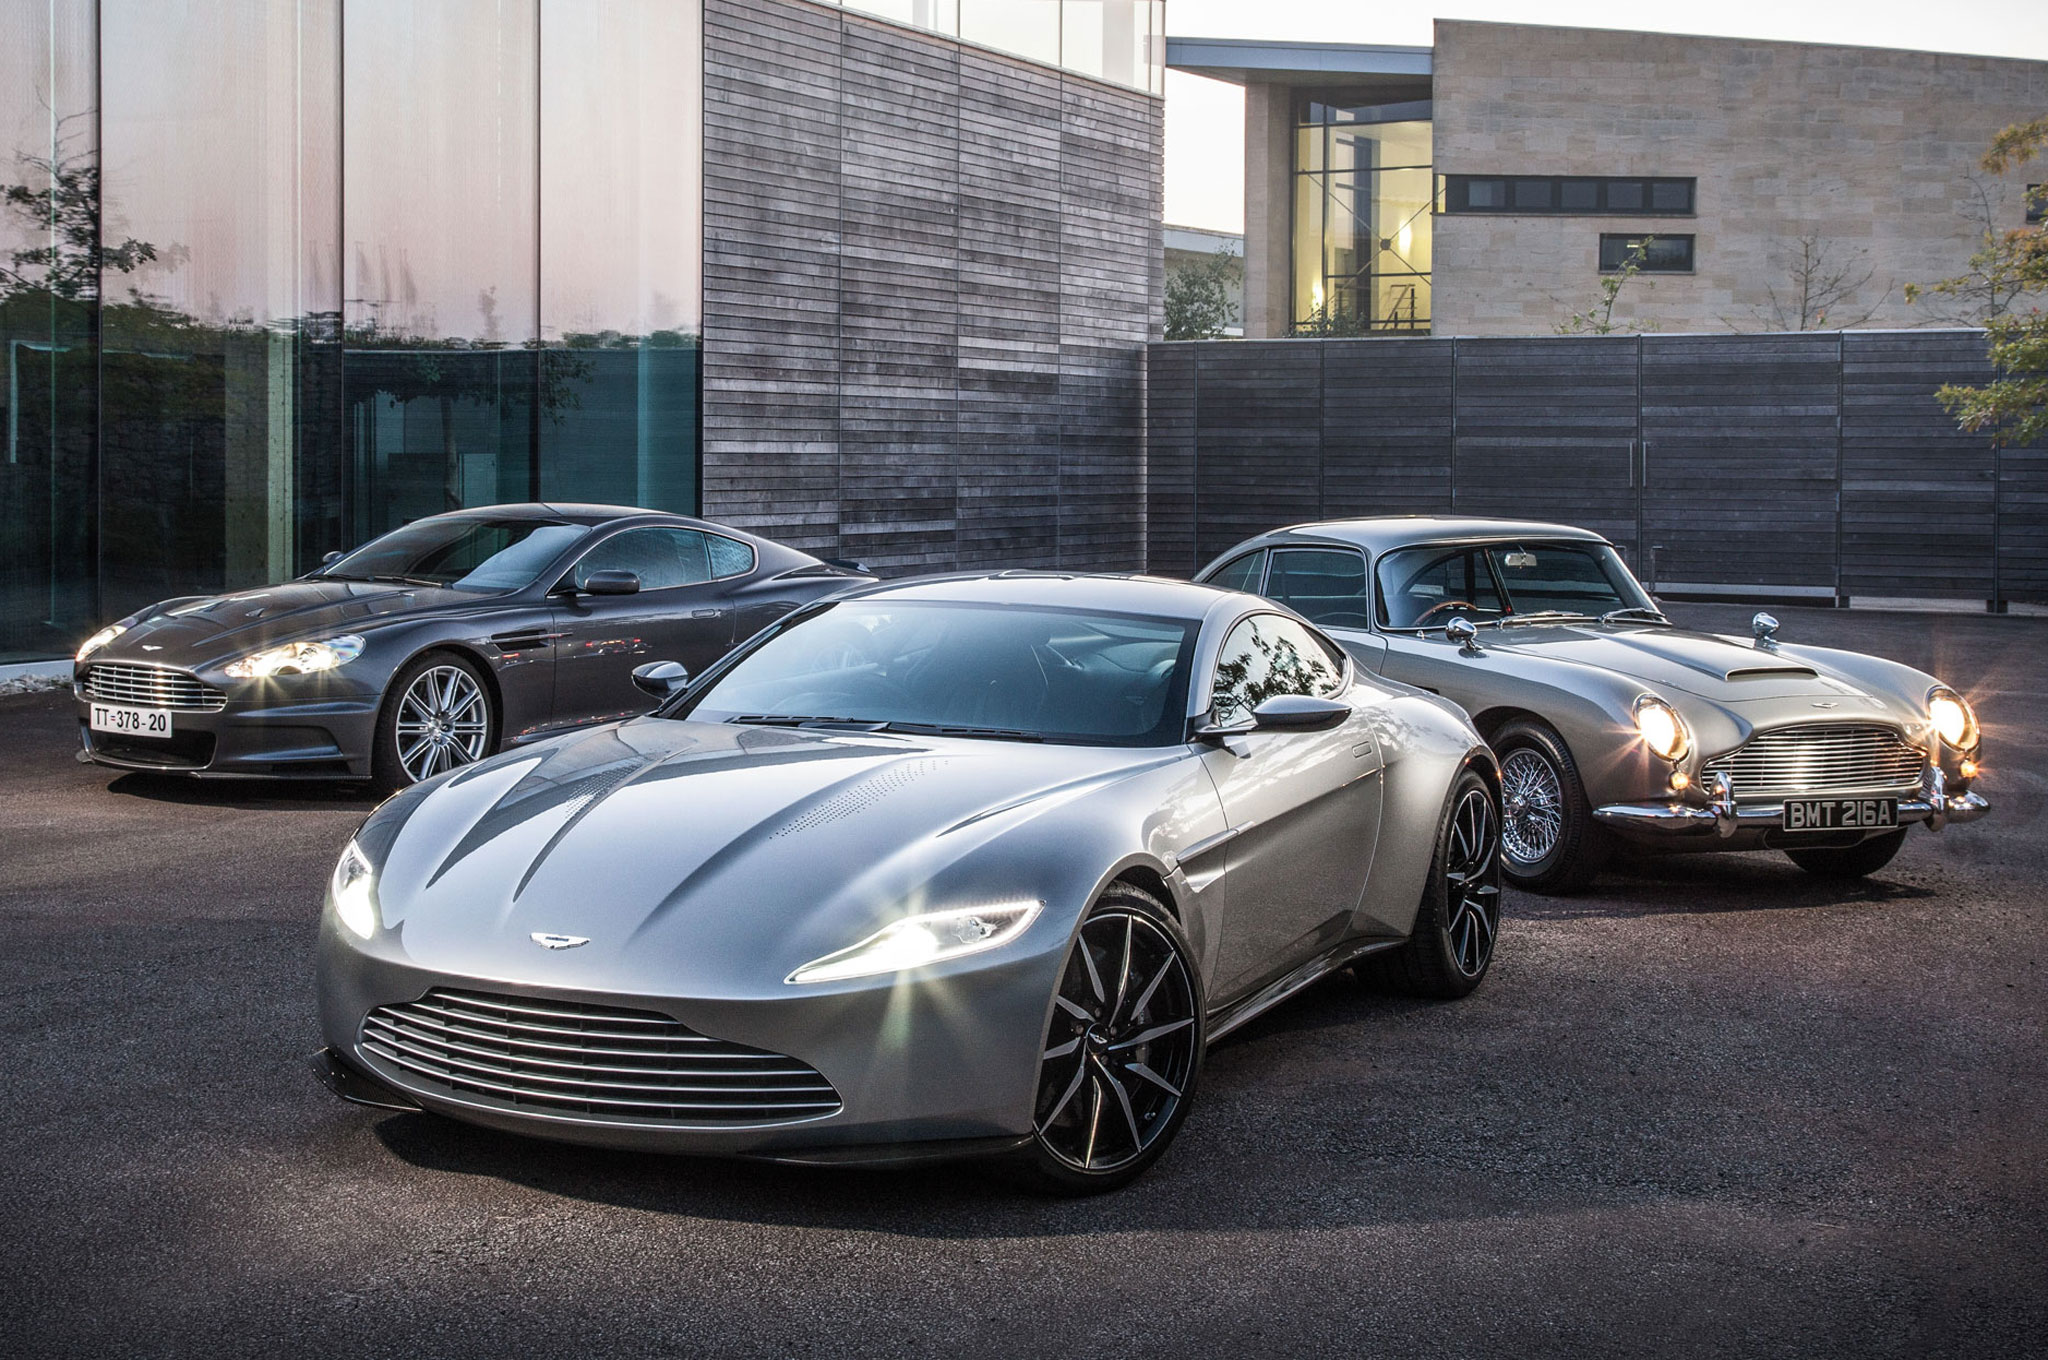 Db10 Aston Martin mattel announces james bond s aston martin db10